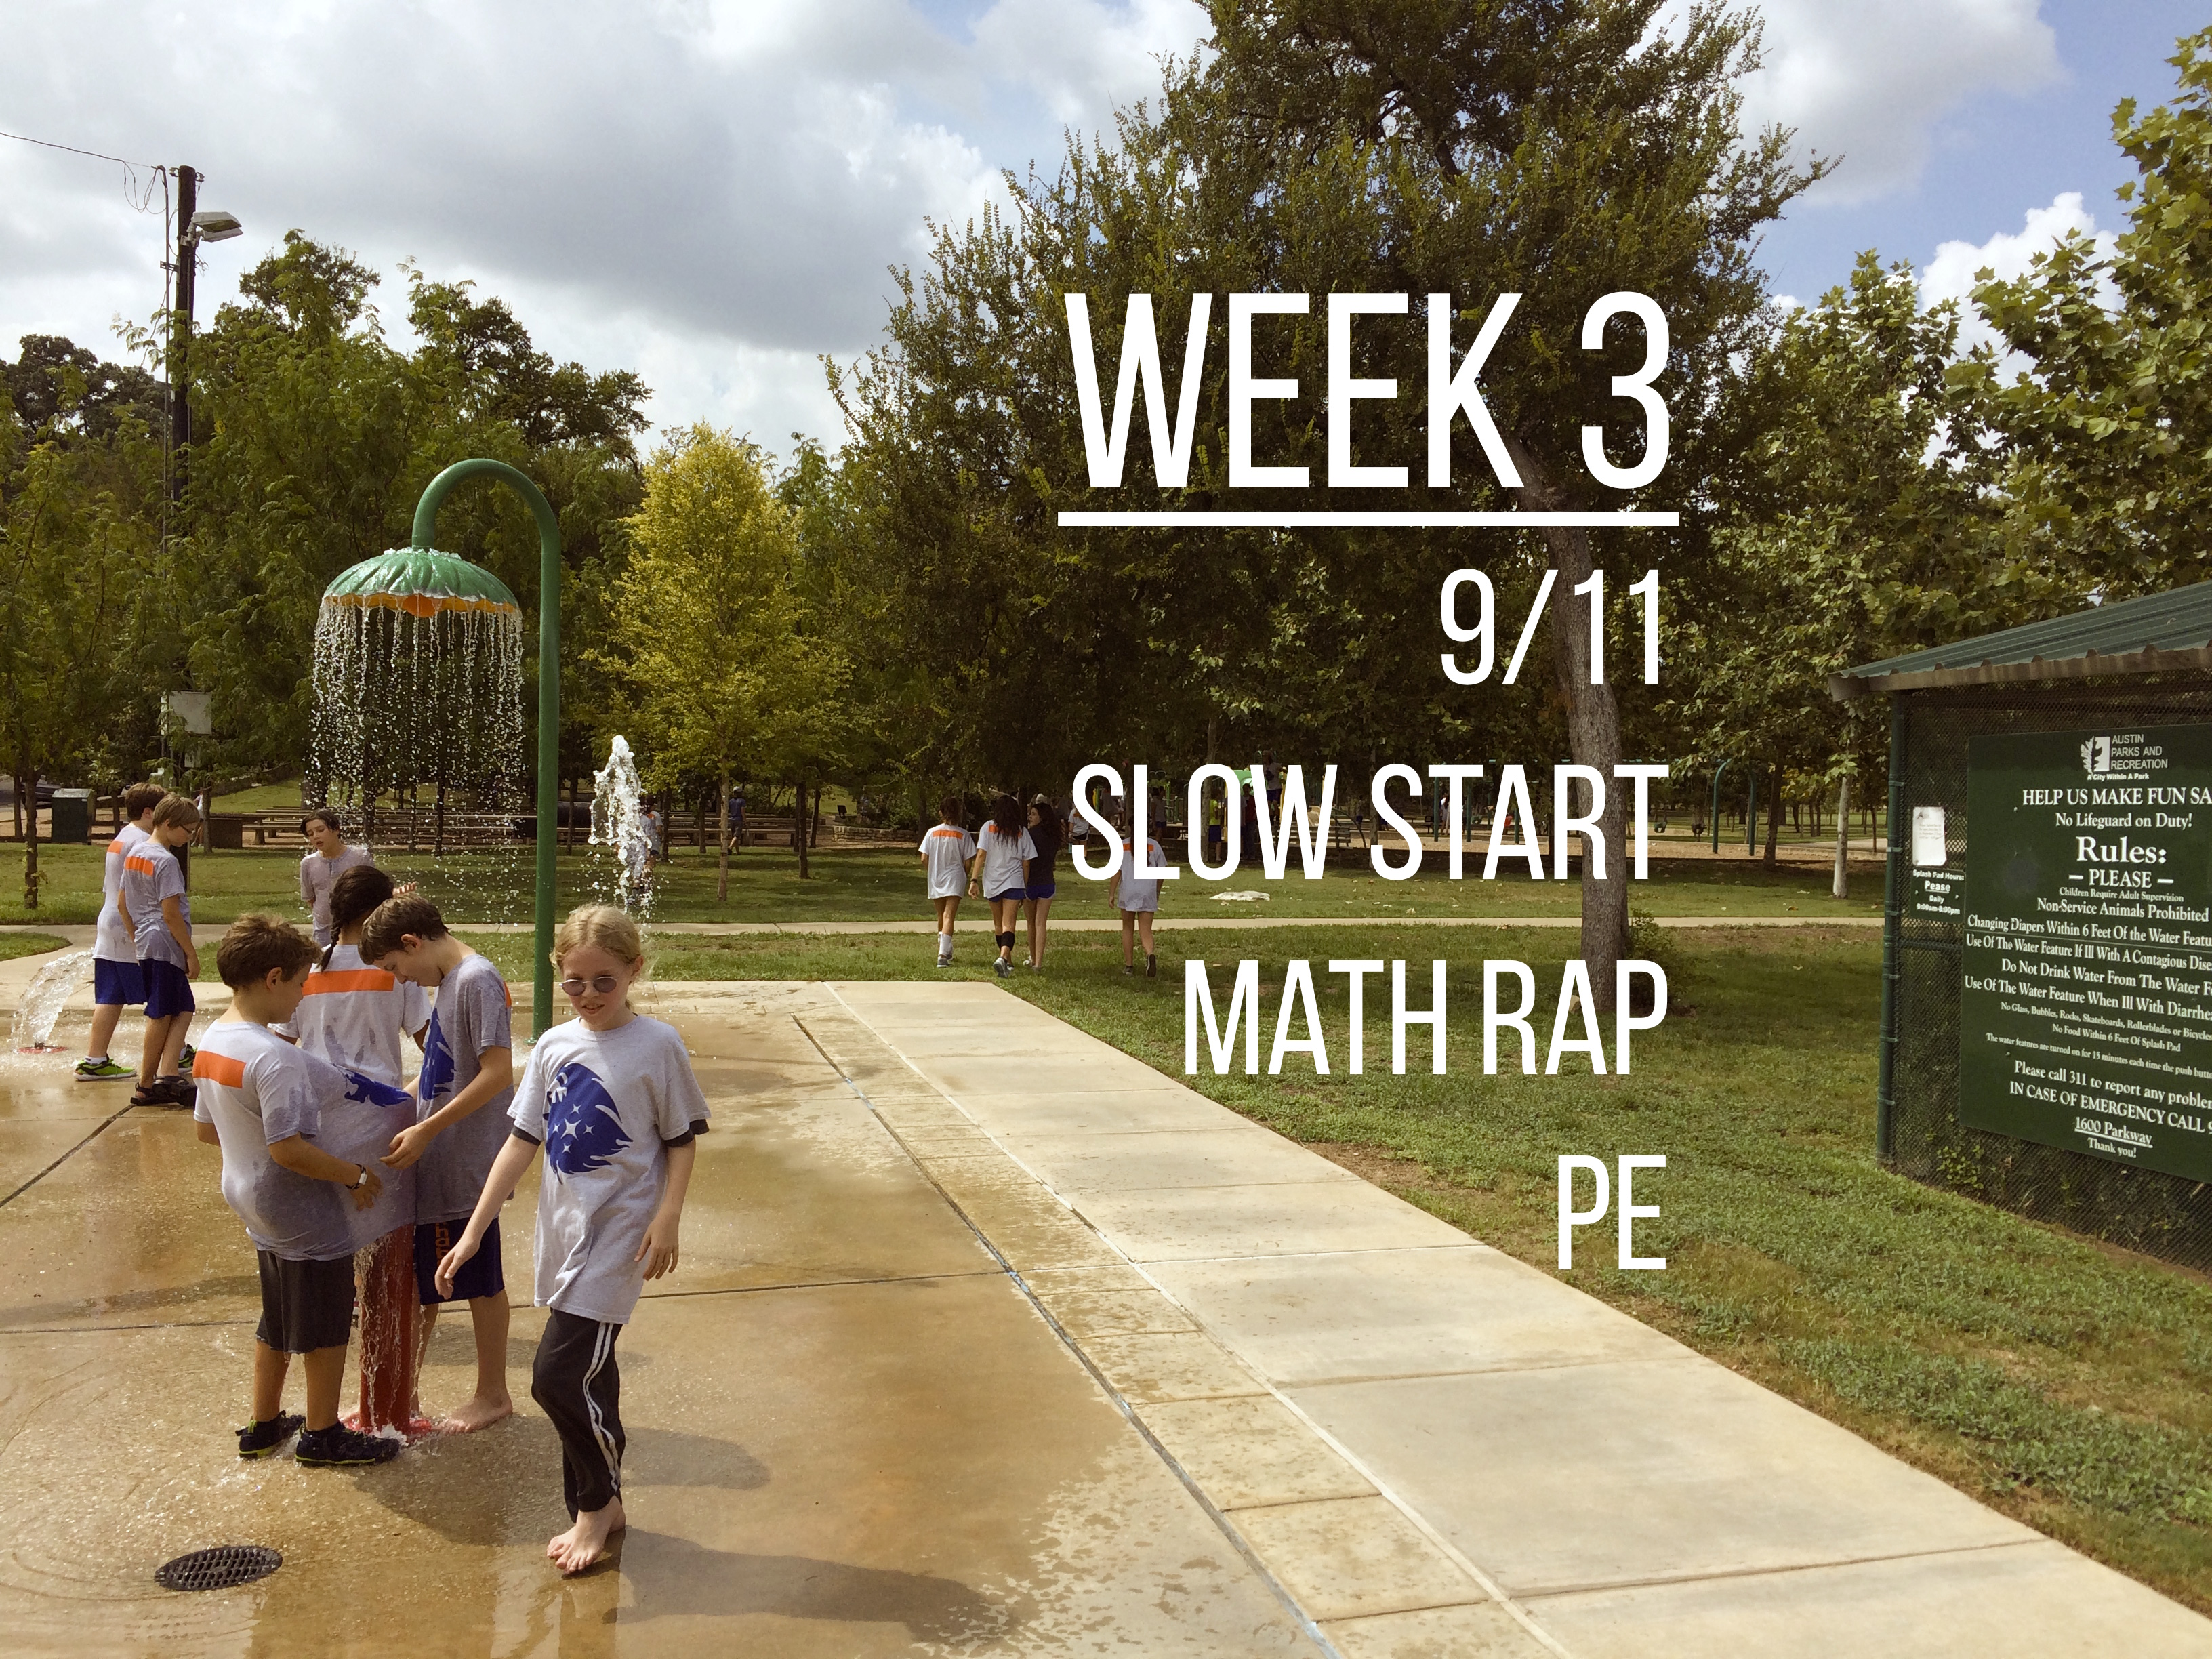 Week 3 – 9/11, Slow Start, Math Rapping, and PE